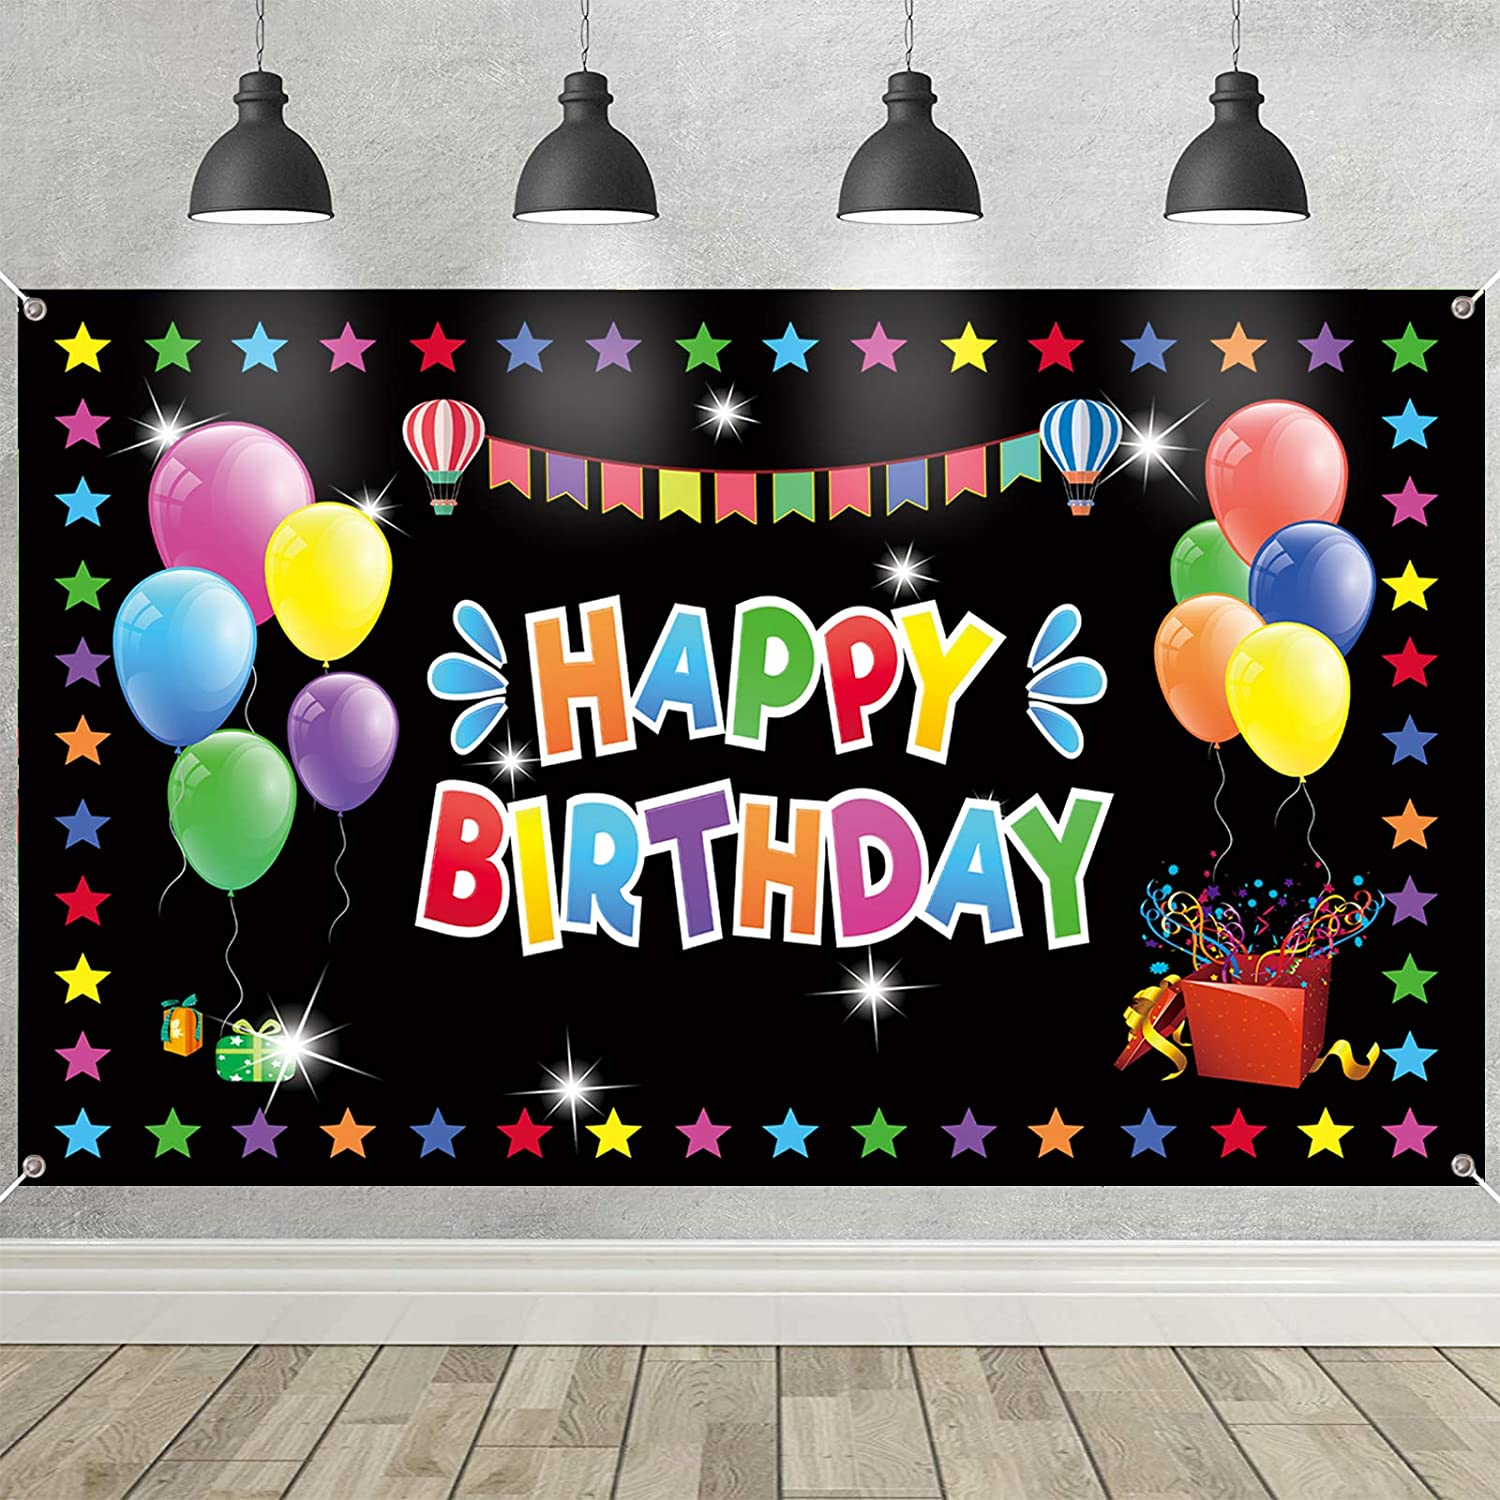 Happy Birthday Backdrop Colorado Springs Mall Banner Large New product Colorful Dec